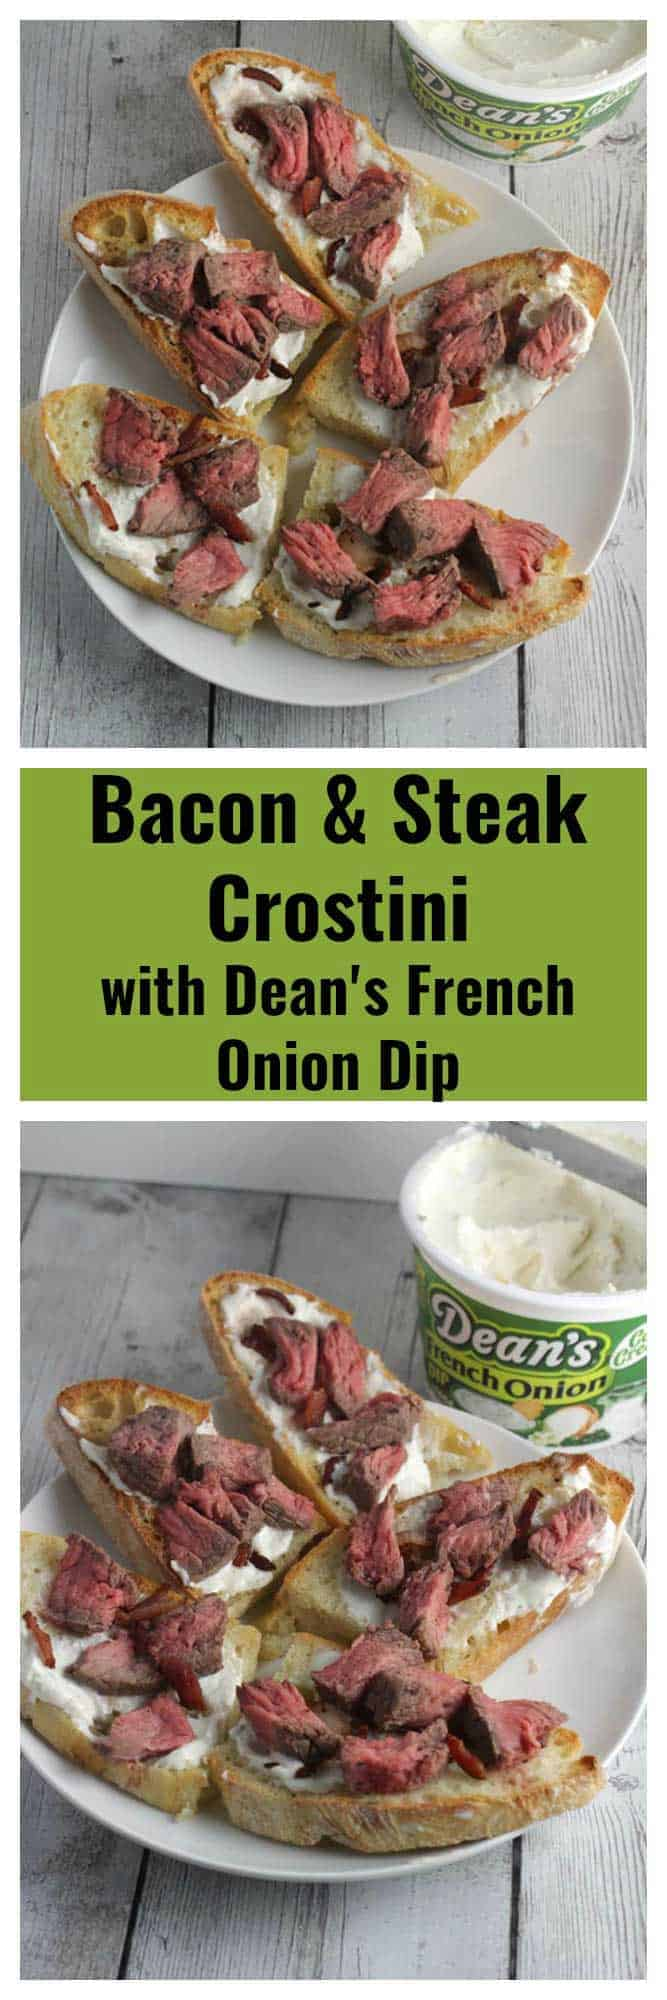 Bacon and Steak Crostini with Dean's French Onion Dip is a tasty and easy snack to make for watching football and other social gatherings. #bacon #snacks #DeansDreamBig #sponsored